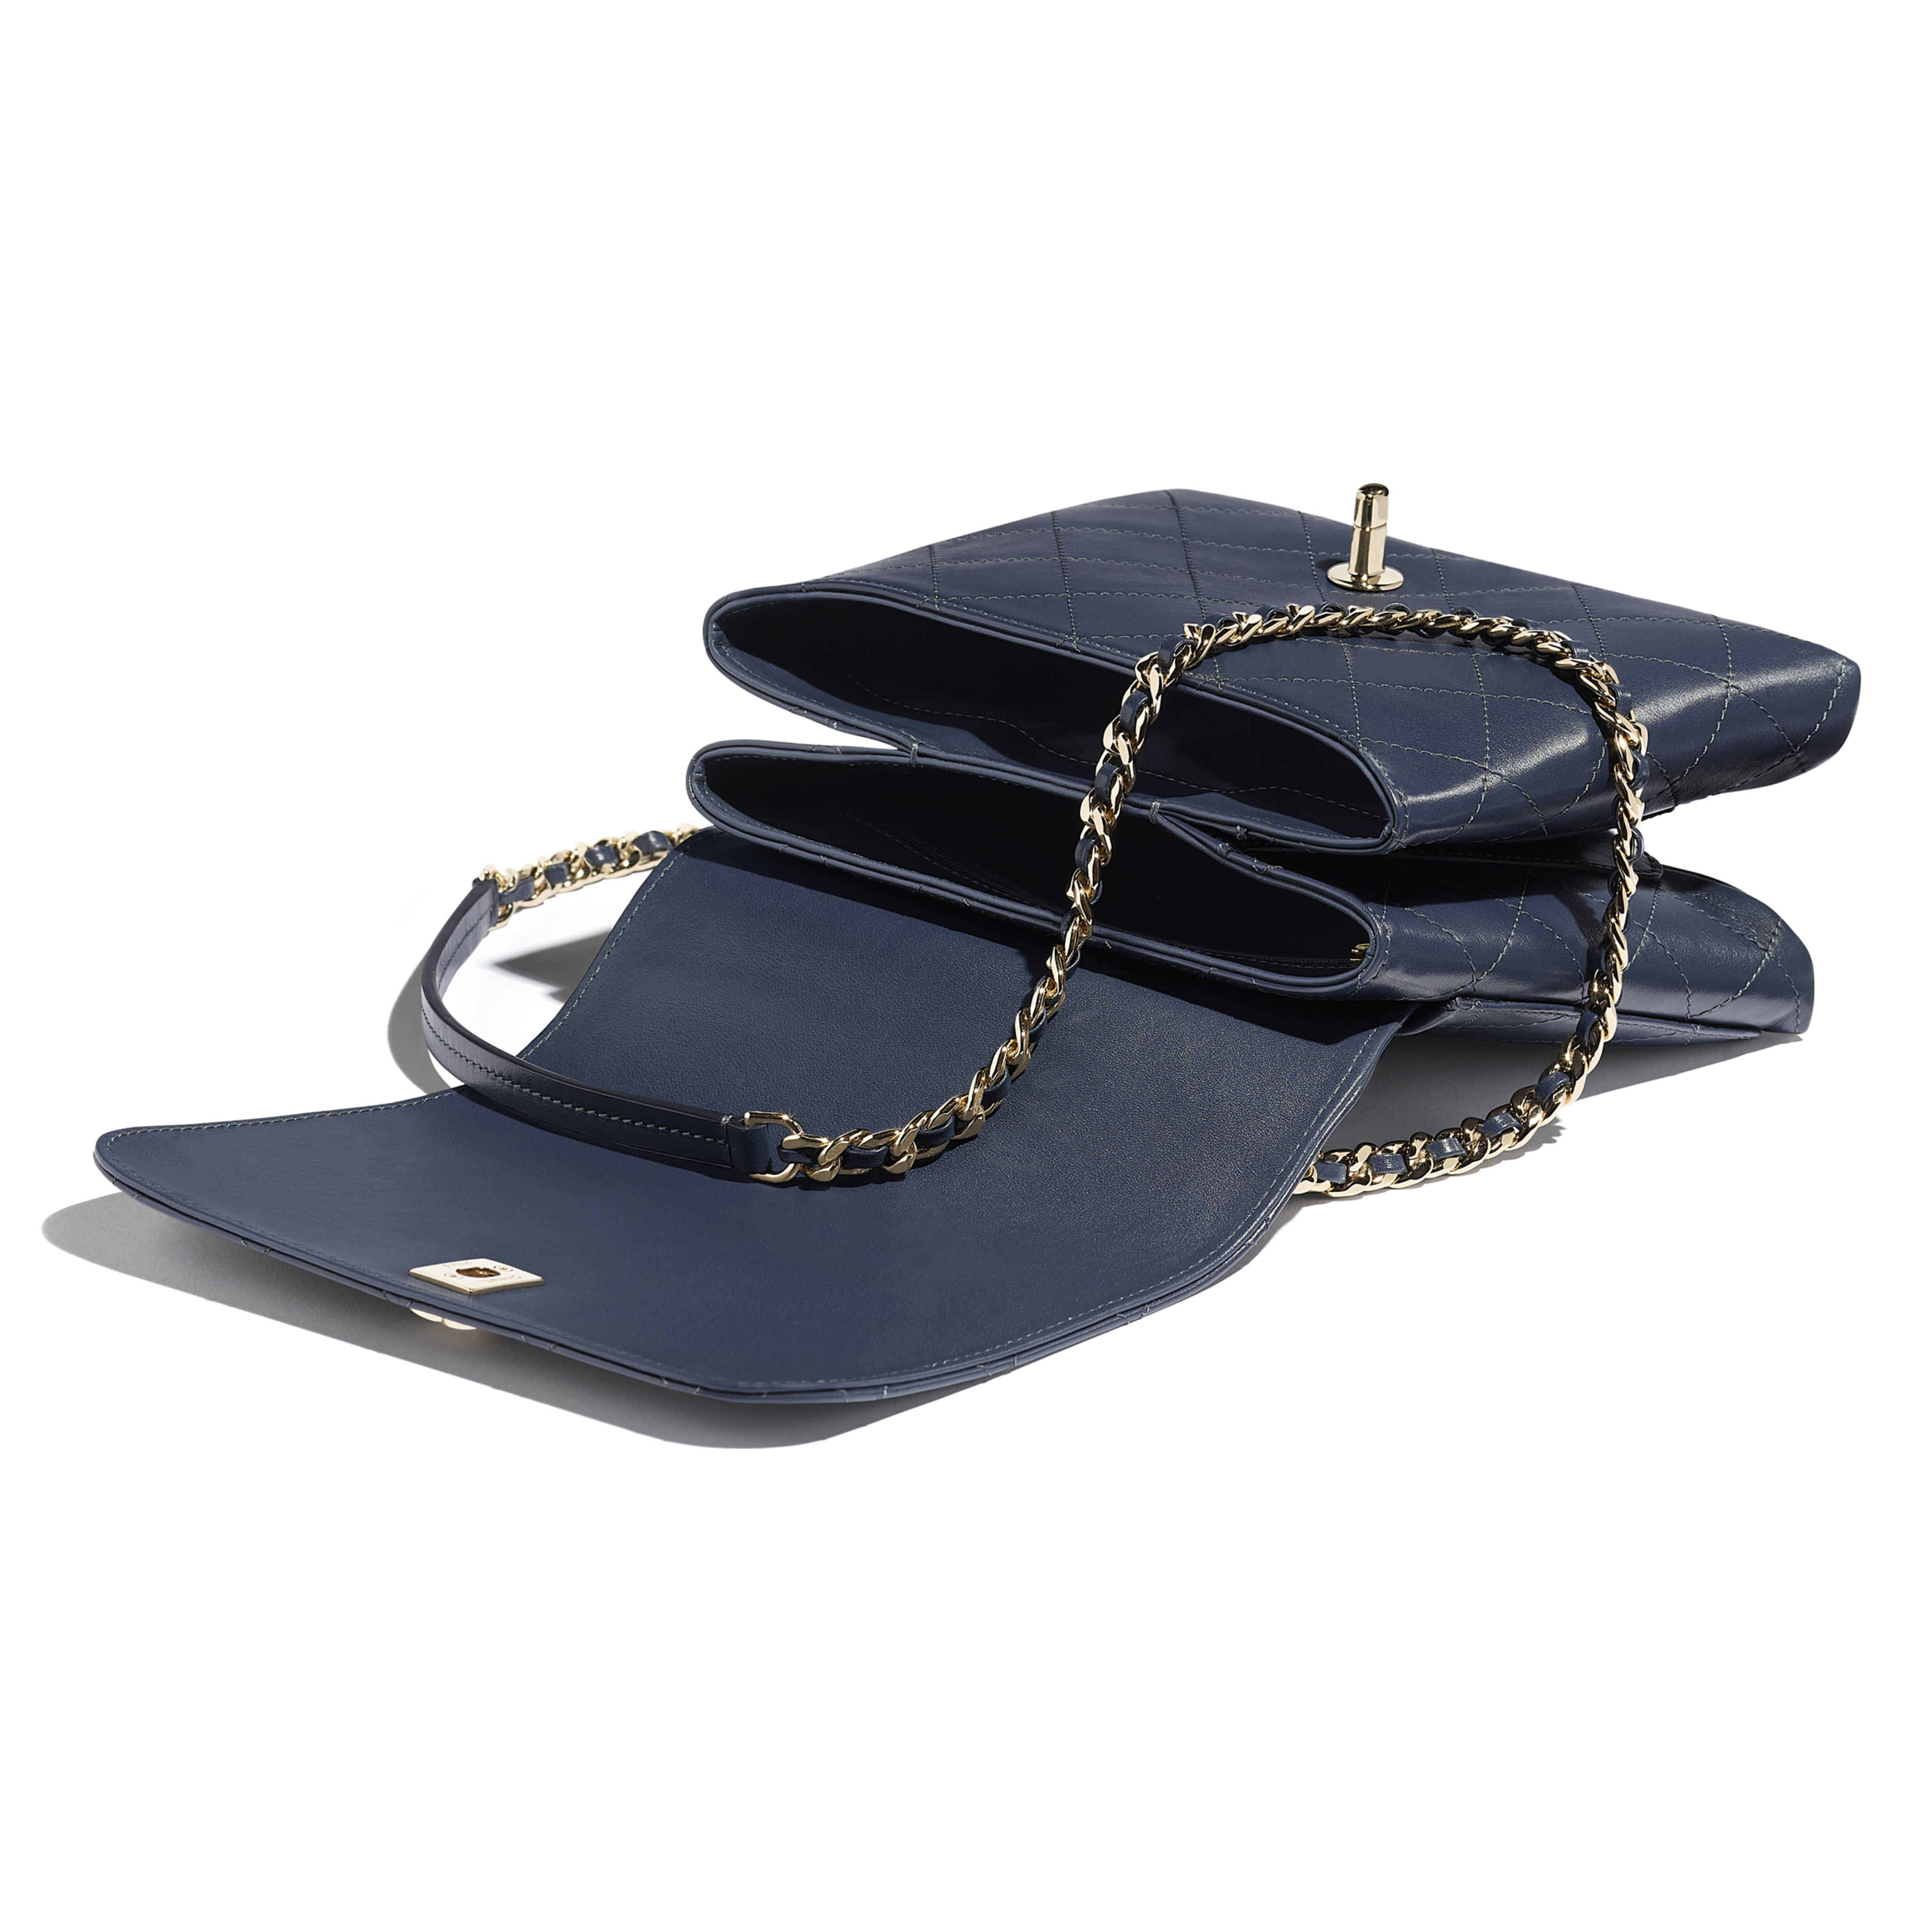 Flap Bag with Top Handle - Navy Blue - Calfskin & Gold-Tone Metal - Other view - see full sized version